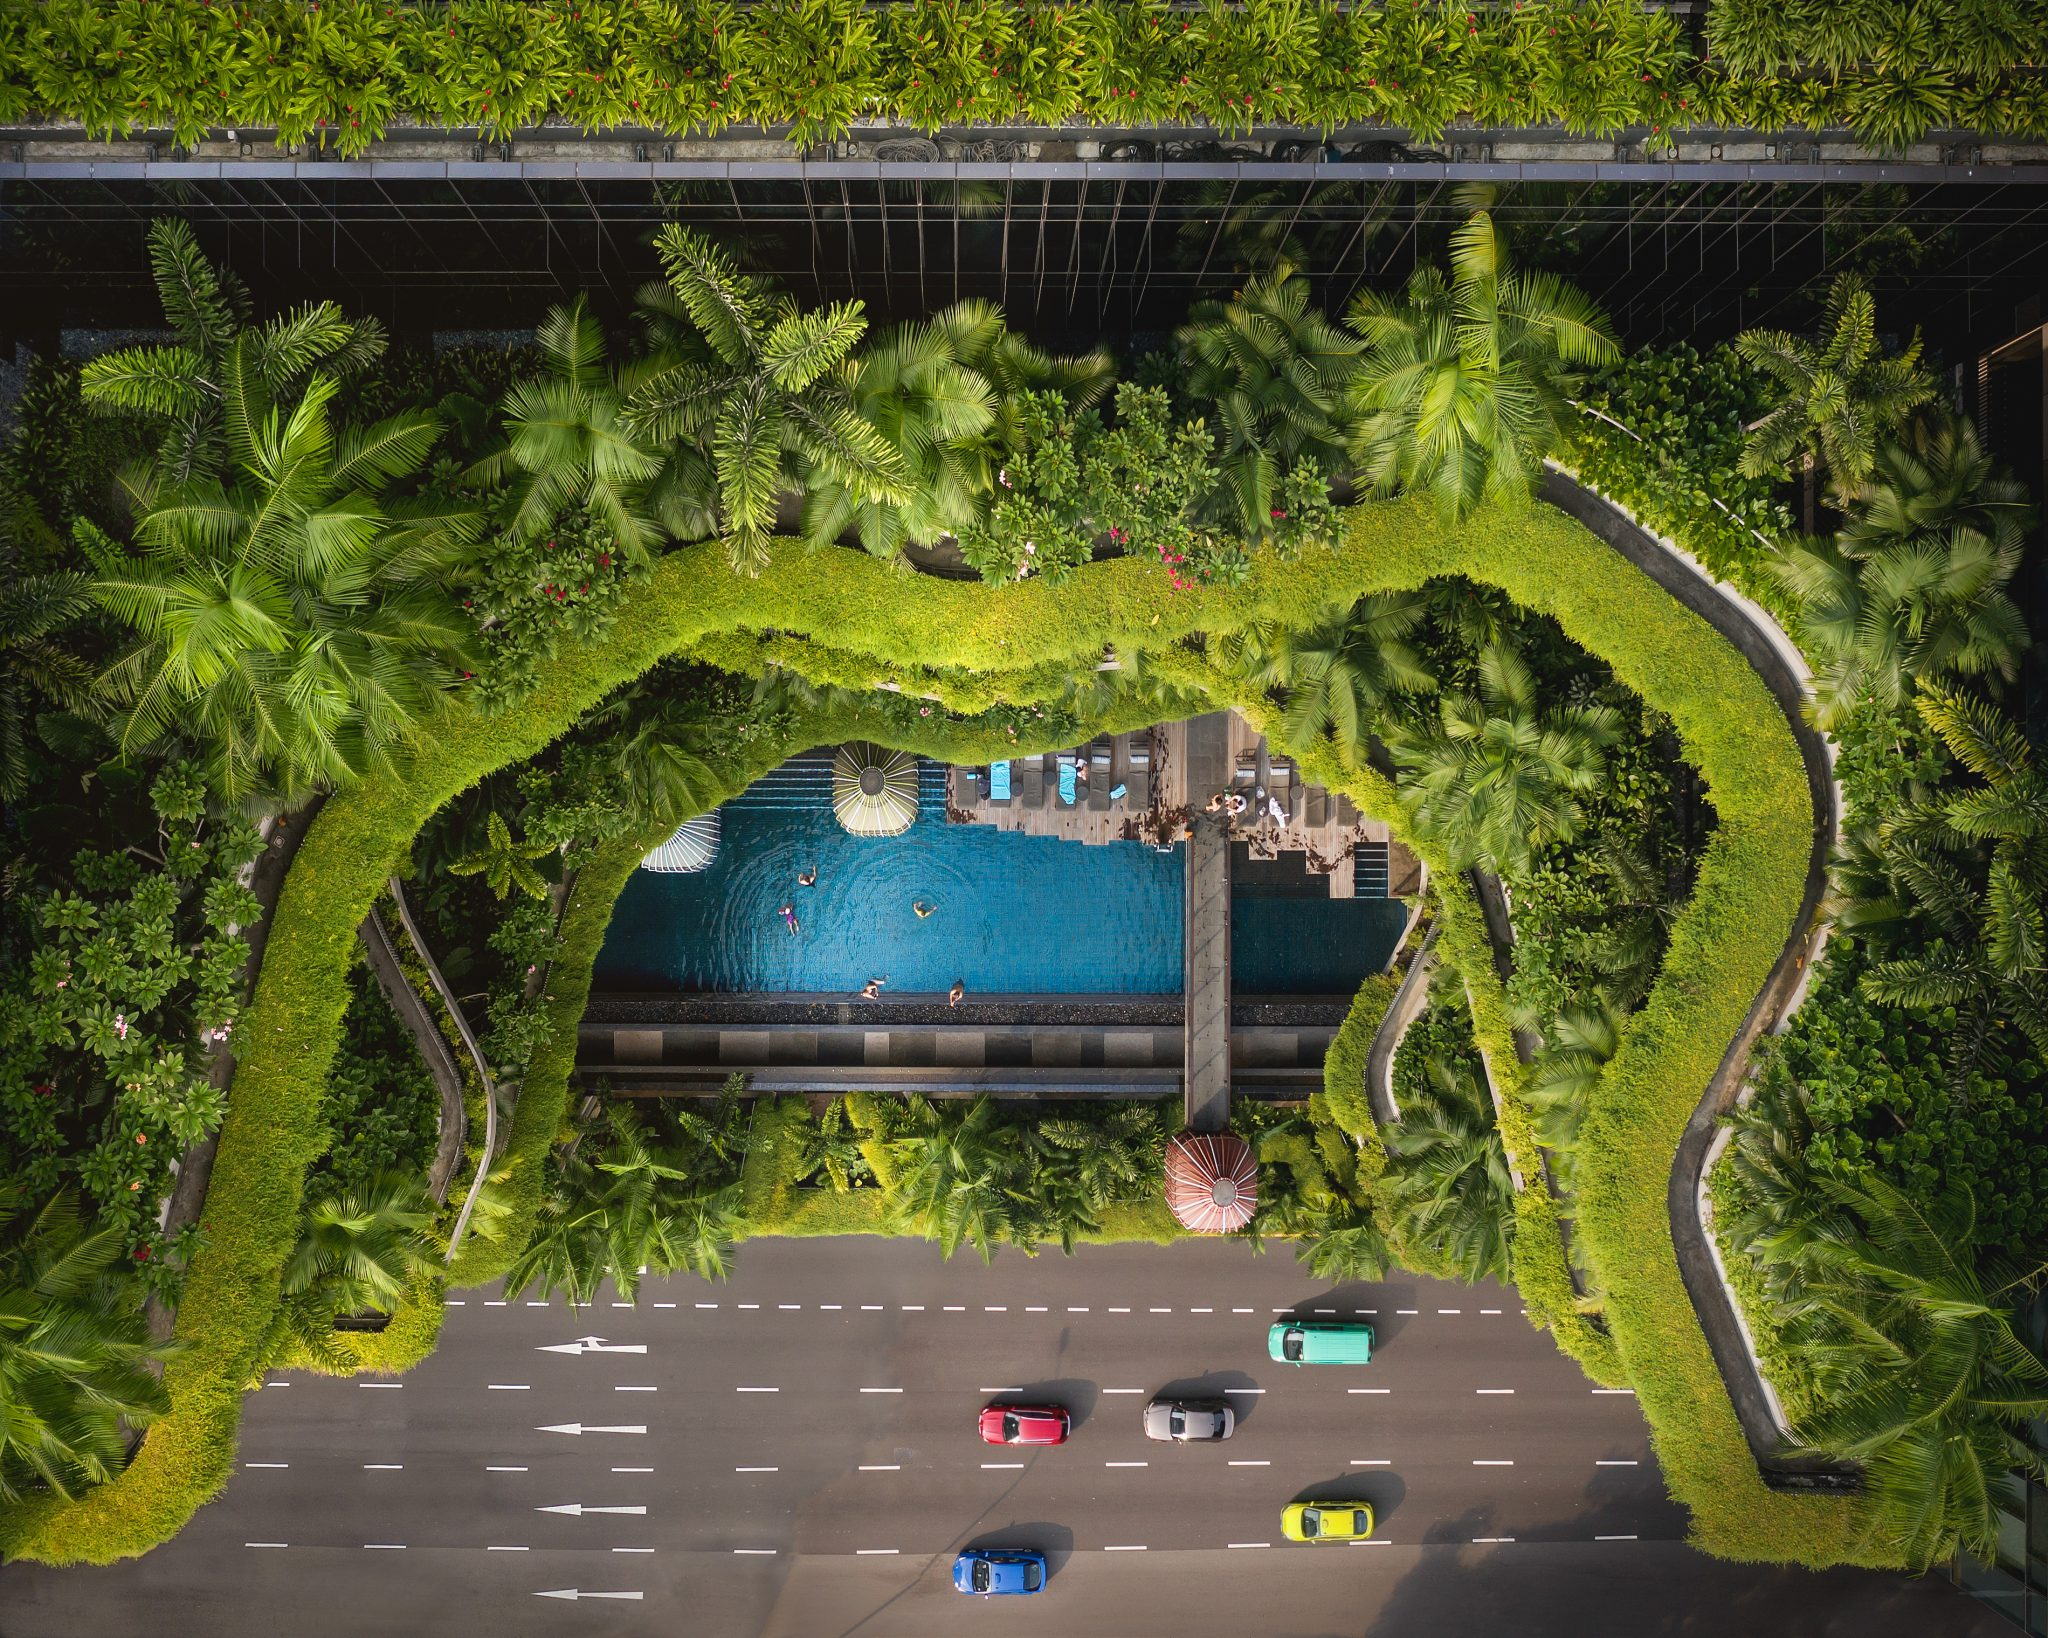 Parkroyal's sustainable Singapore oasis